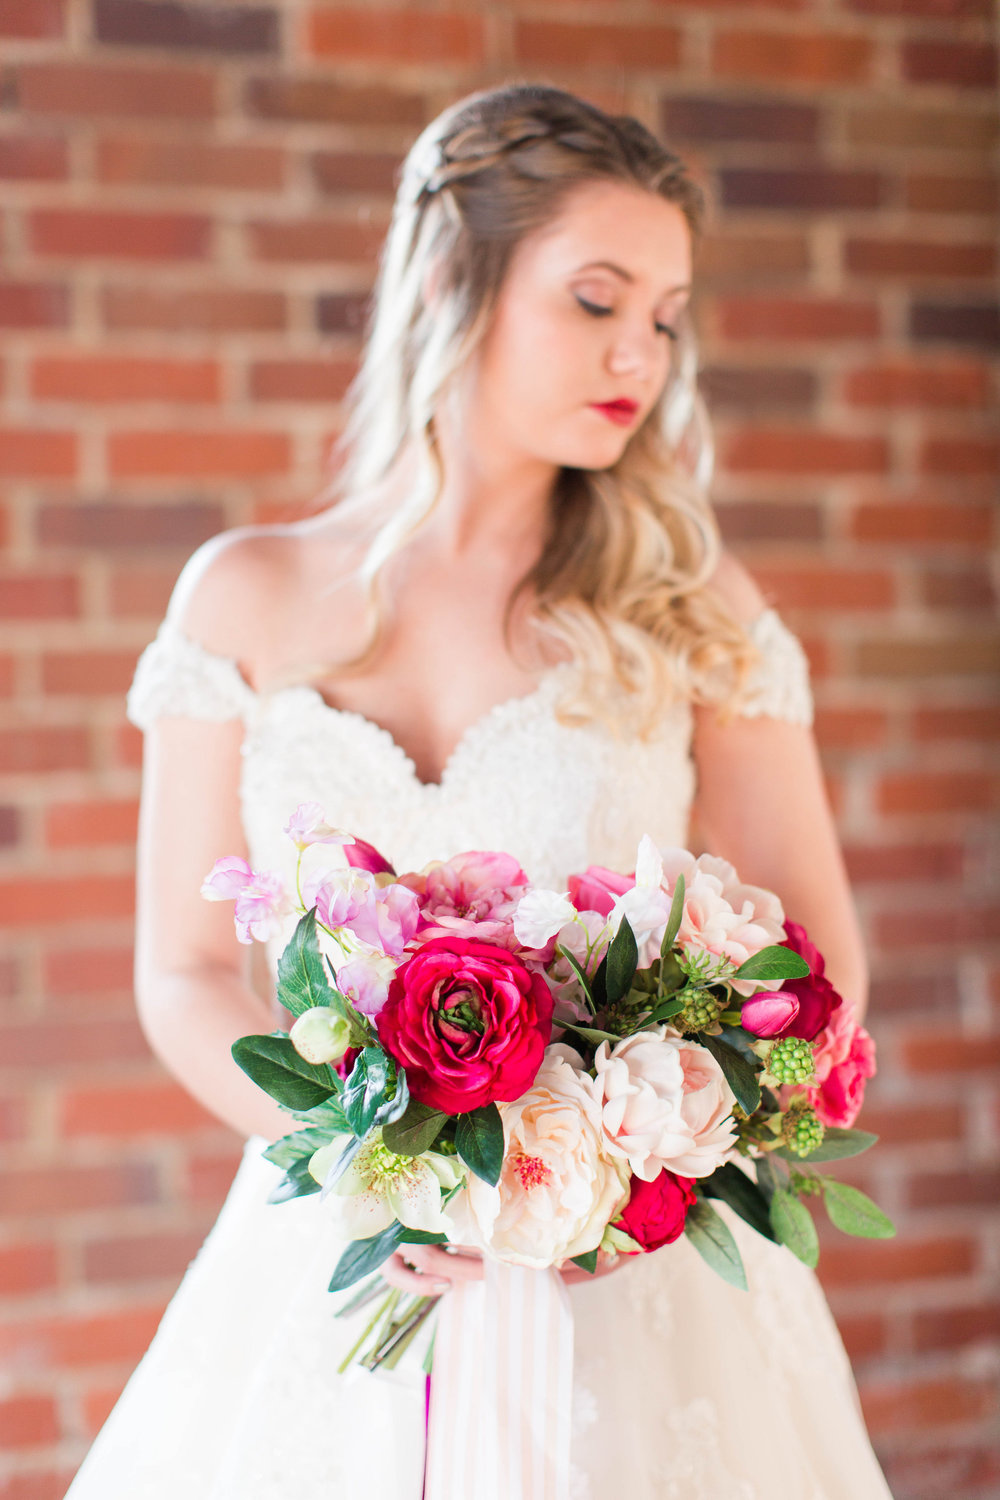 afloral-fake-flower-wedding-ivory-and-beau-bridal-boutique-maggie-sottero-saffron-the-hall-on-vine-wedding-statesboro-wedding-savannah-wedding-kristian-designs-rachel-strickland-photography-savannah-bridal-southern-bride-savannah-bride-1.jpg